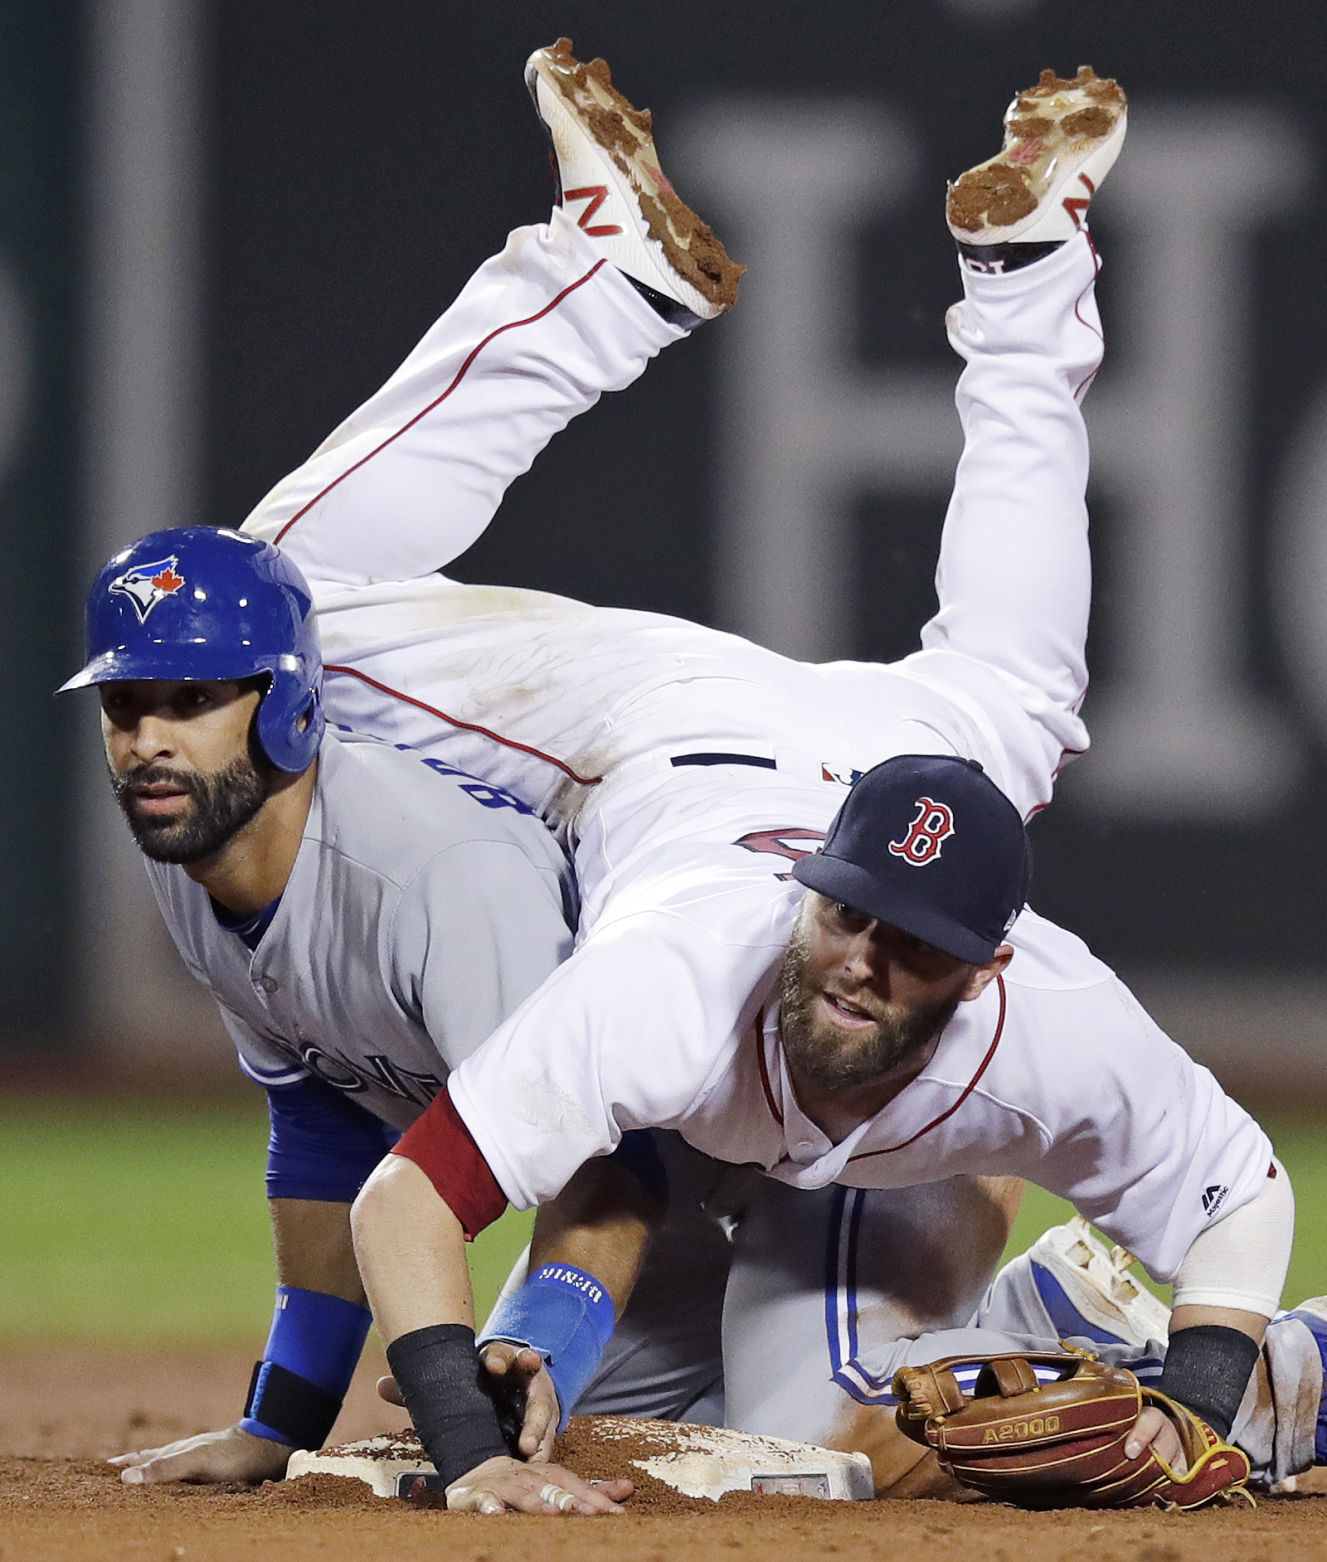 Red Sox beat Blue Jays in 15-inning game